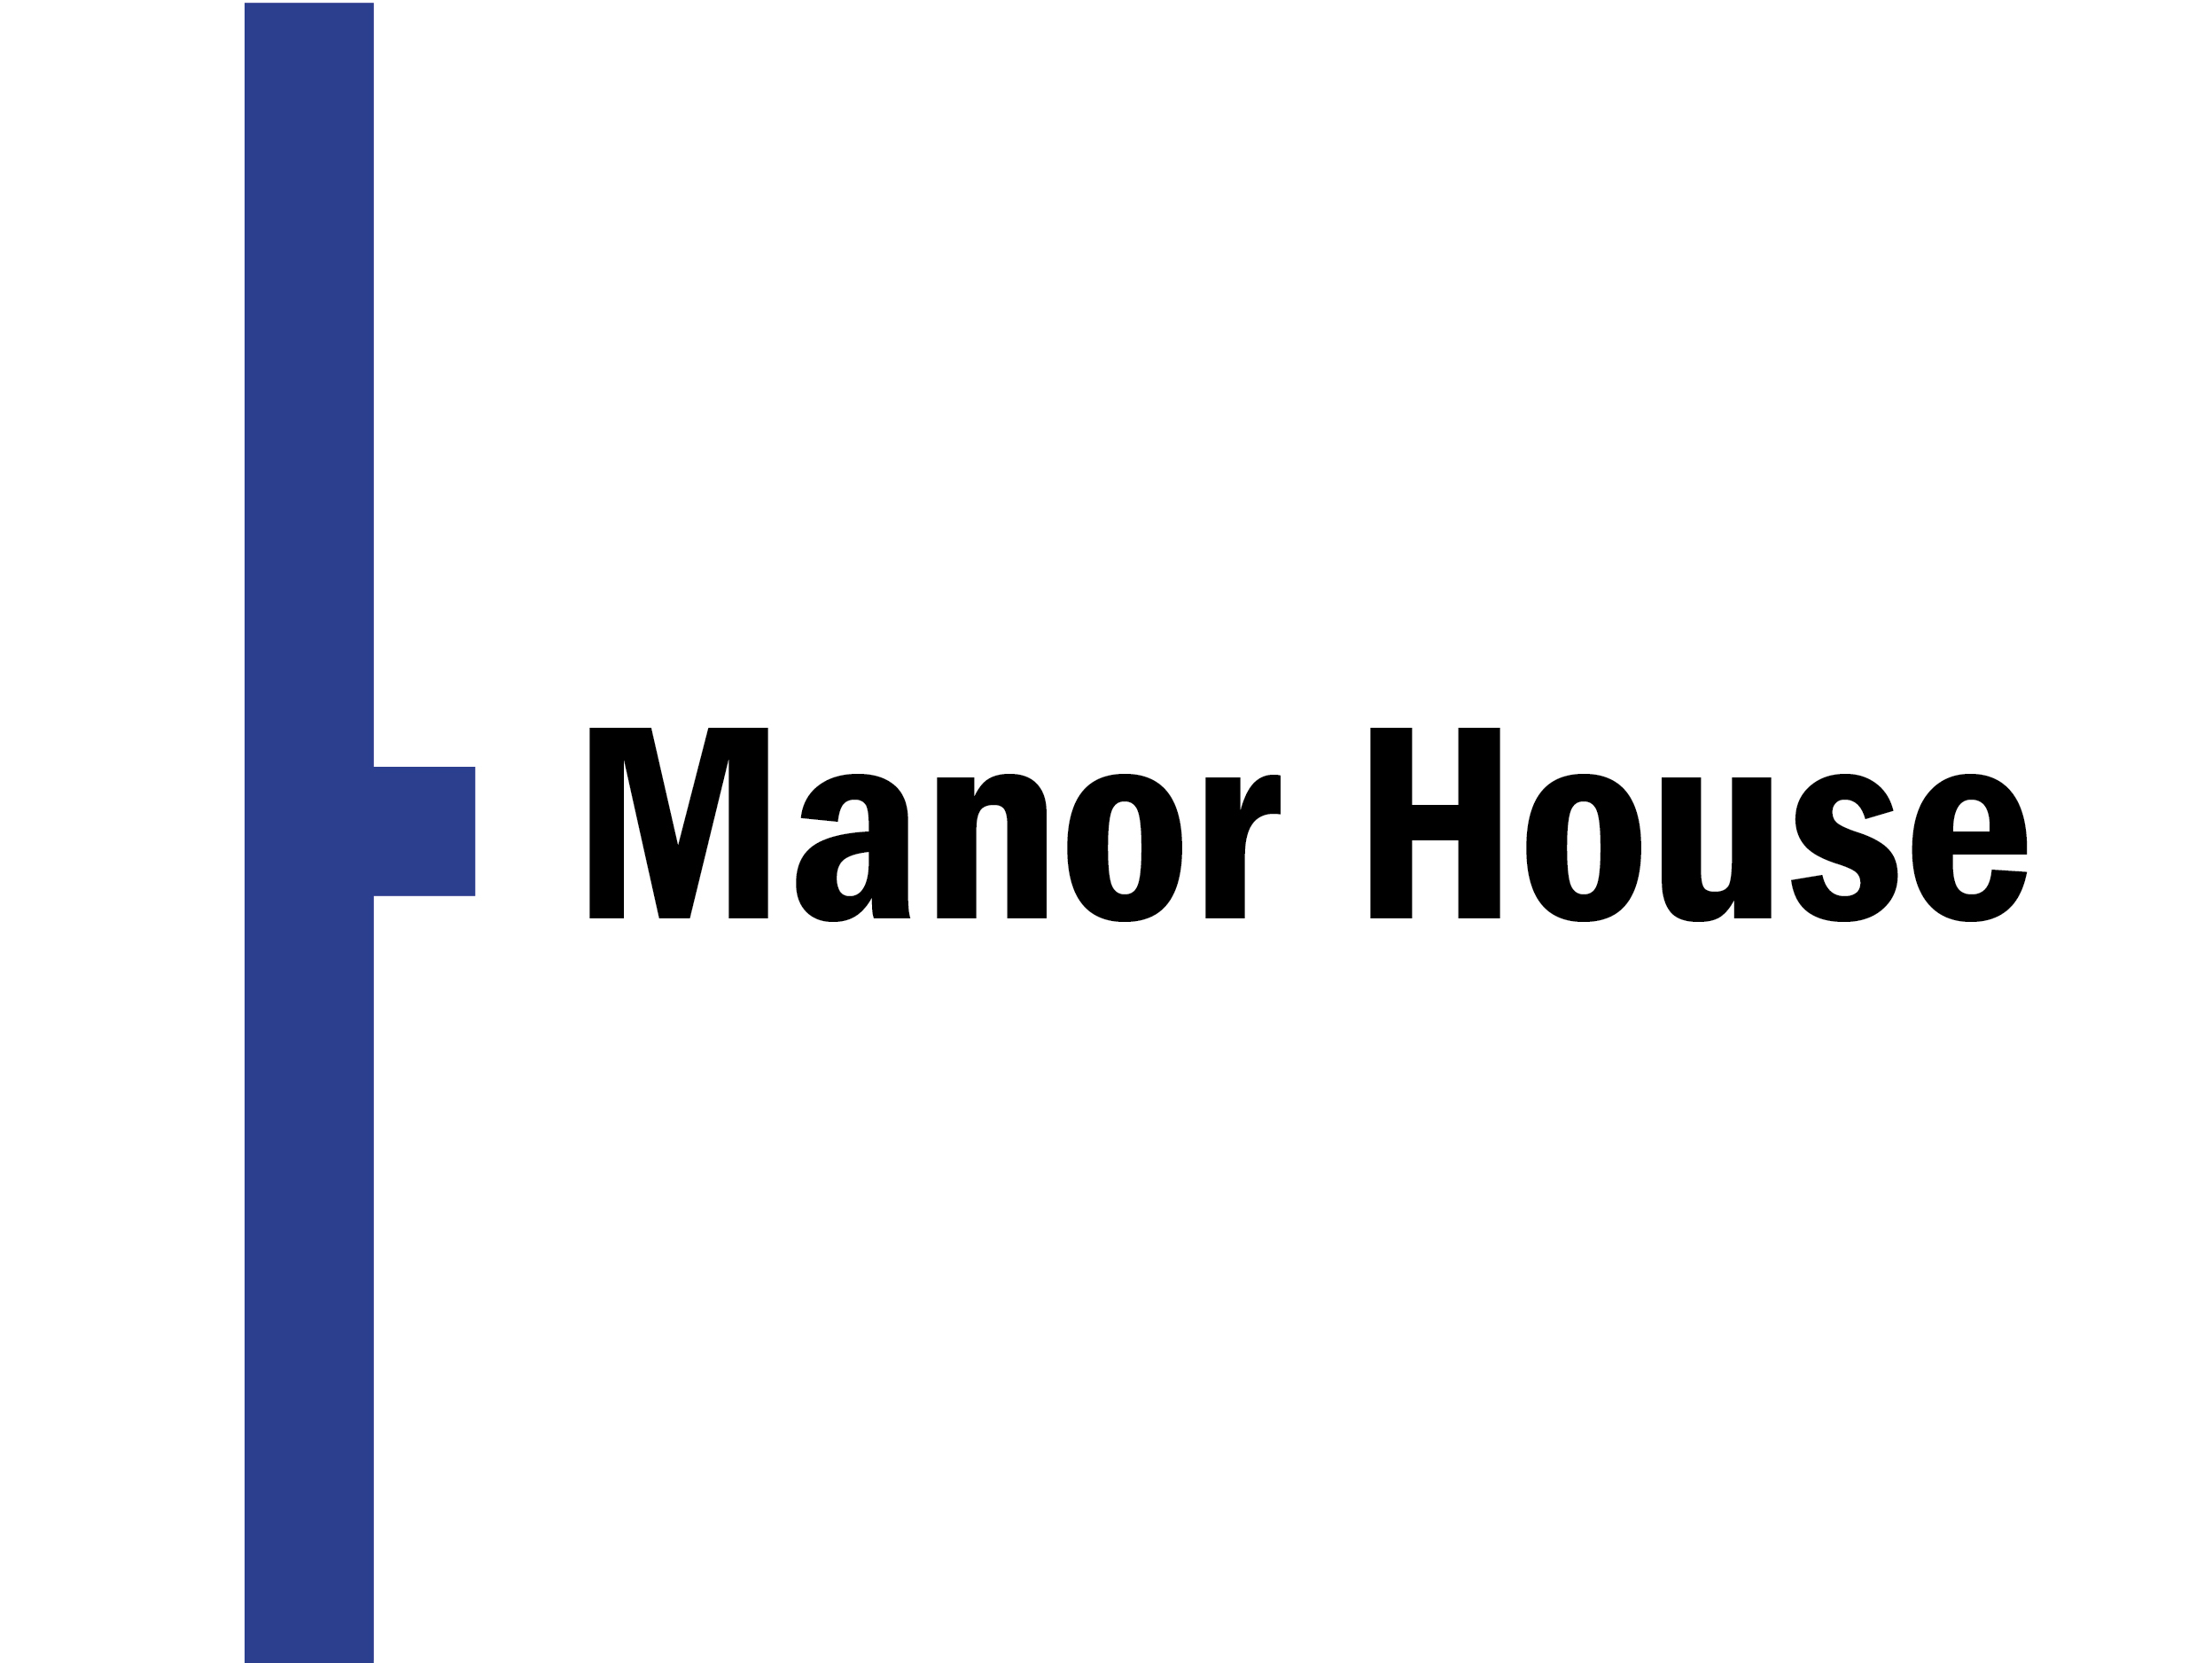 Manor House, Piccadilly Line